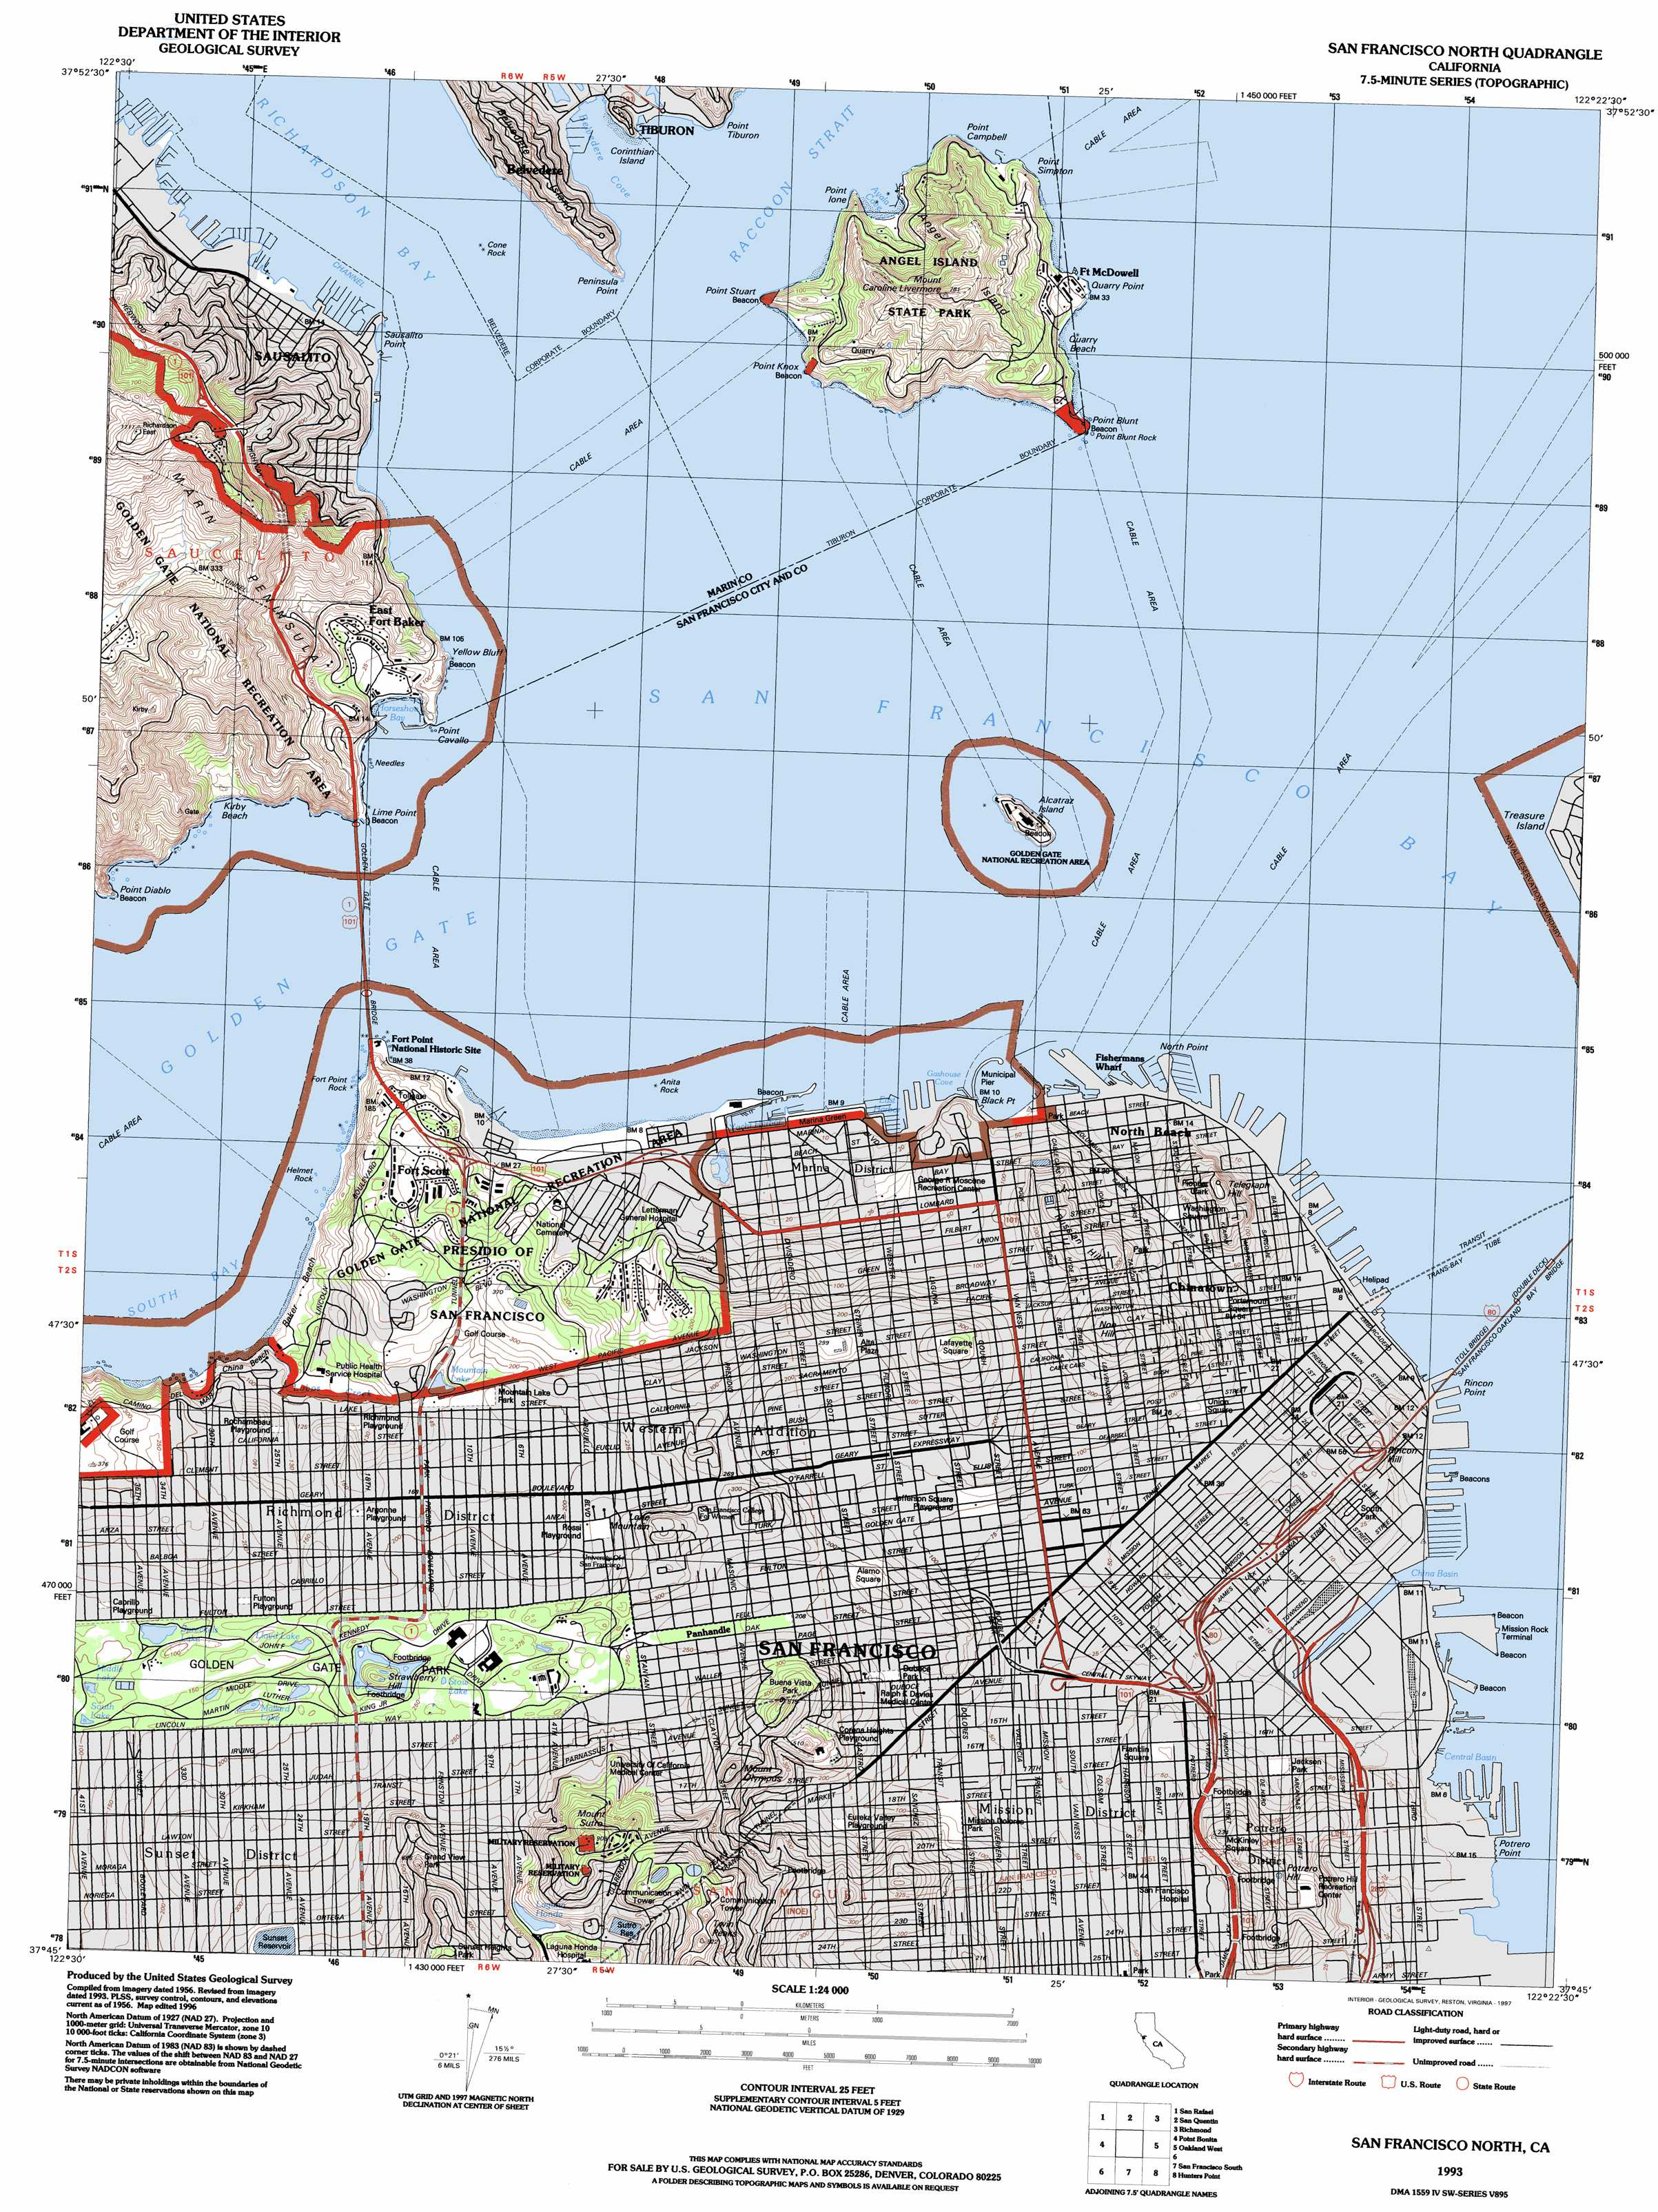 San Francisco North topographic map, CA - USGS Topo Quad 37122g4